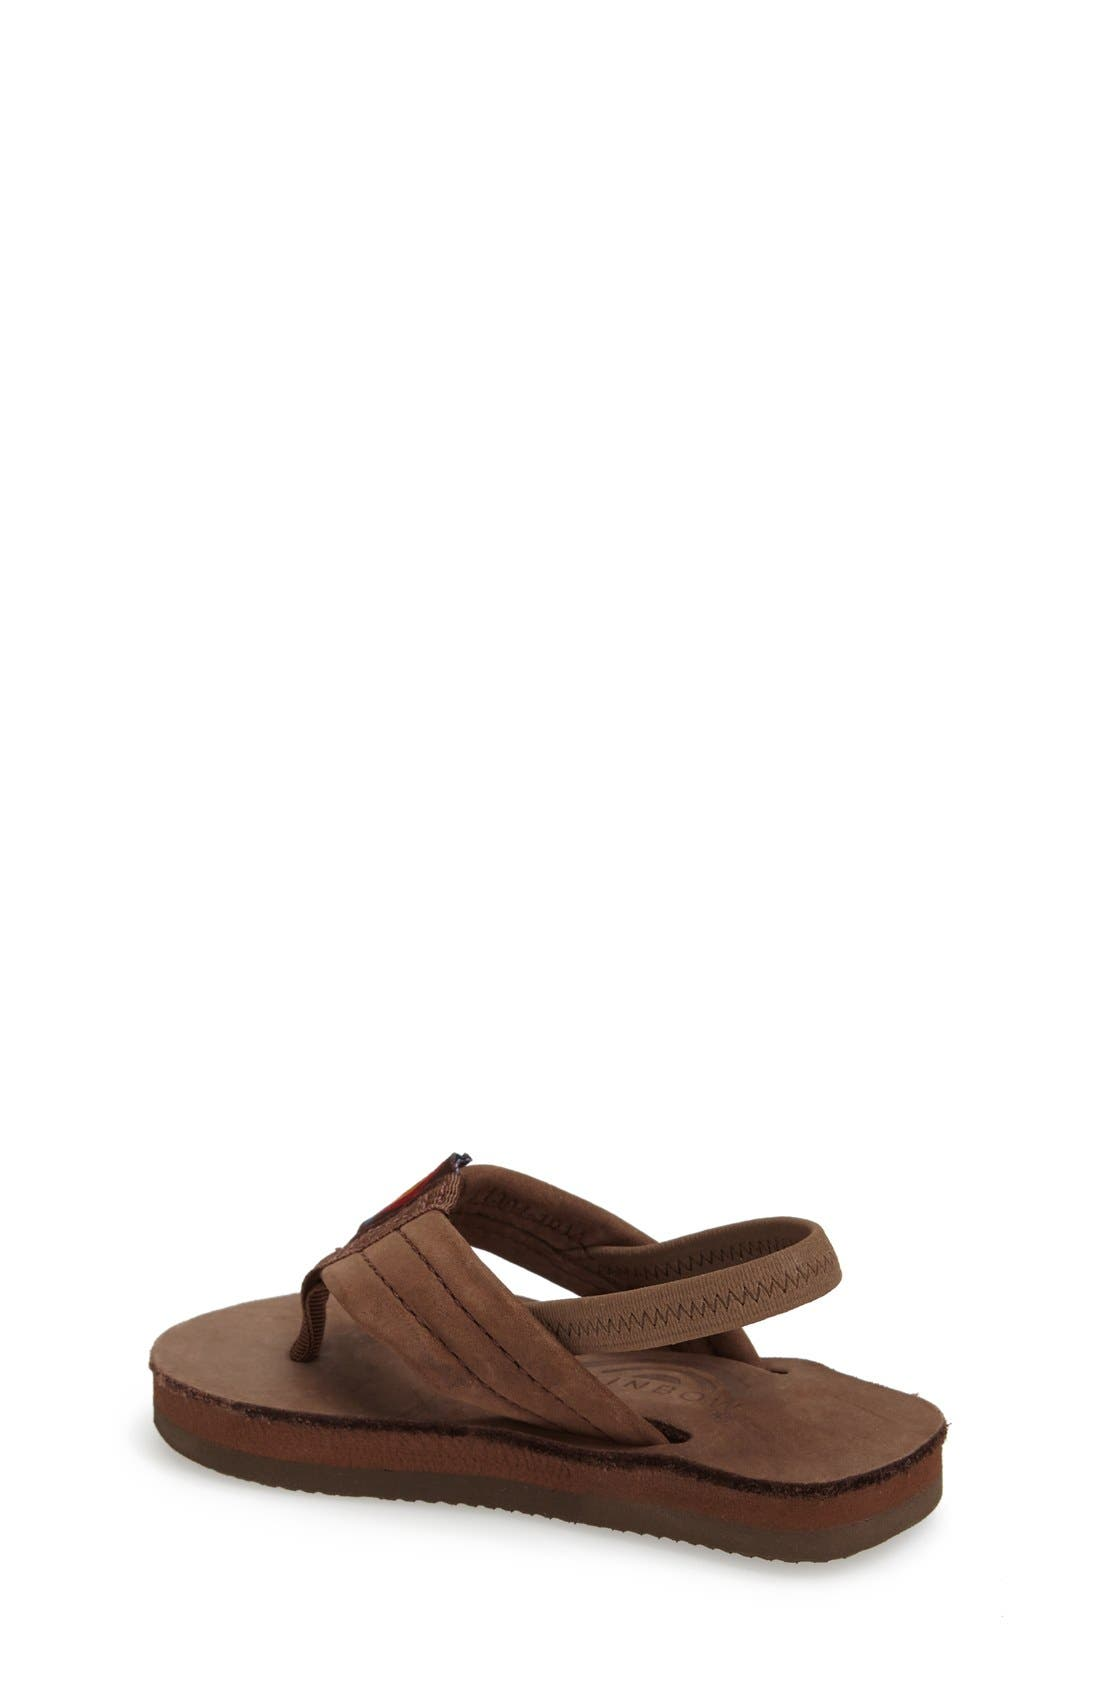 RAINBOW<SUP>®</SUP>, Rainbow Leather Sandal, Alternate thumbnail 7, color, EXPRESSO